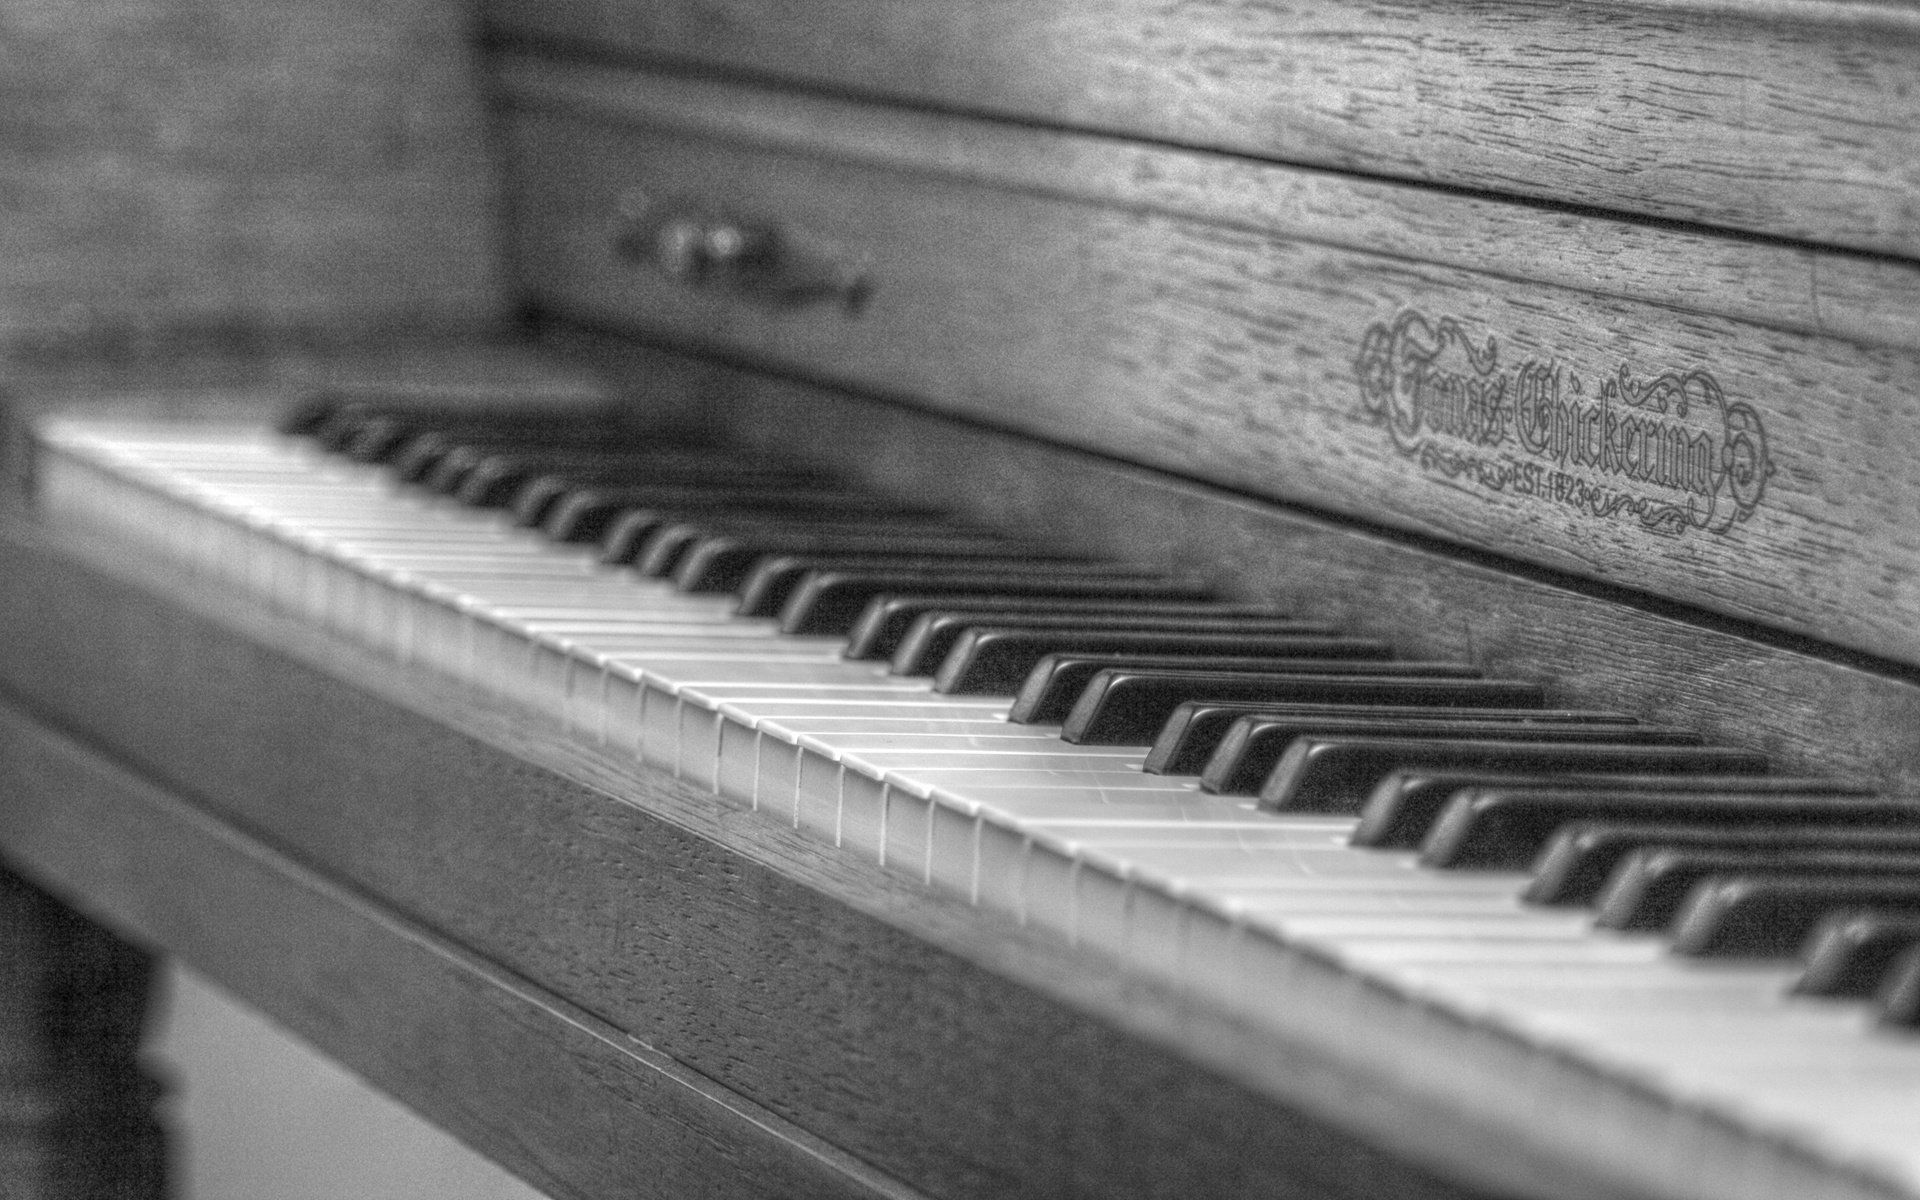 piano music images